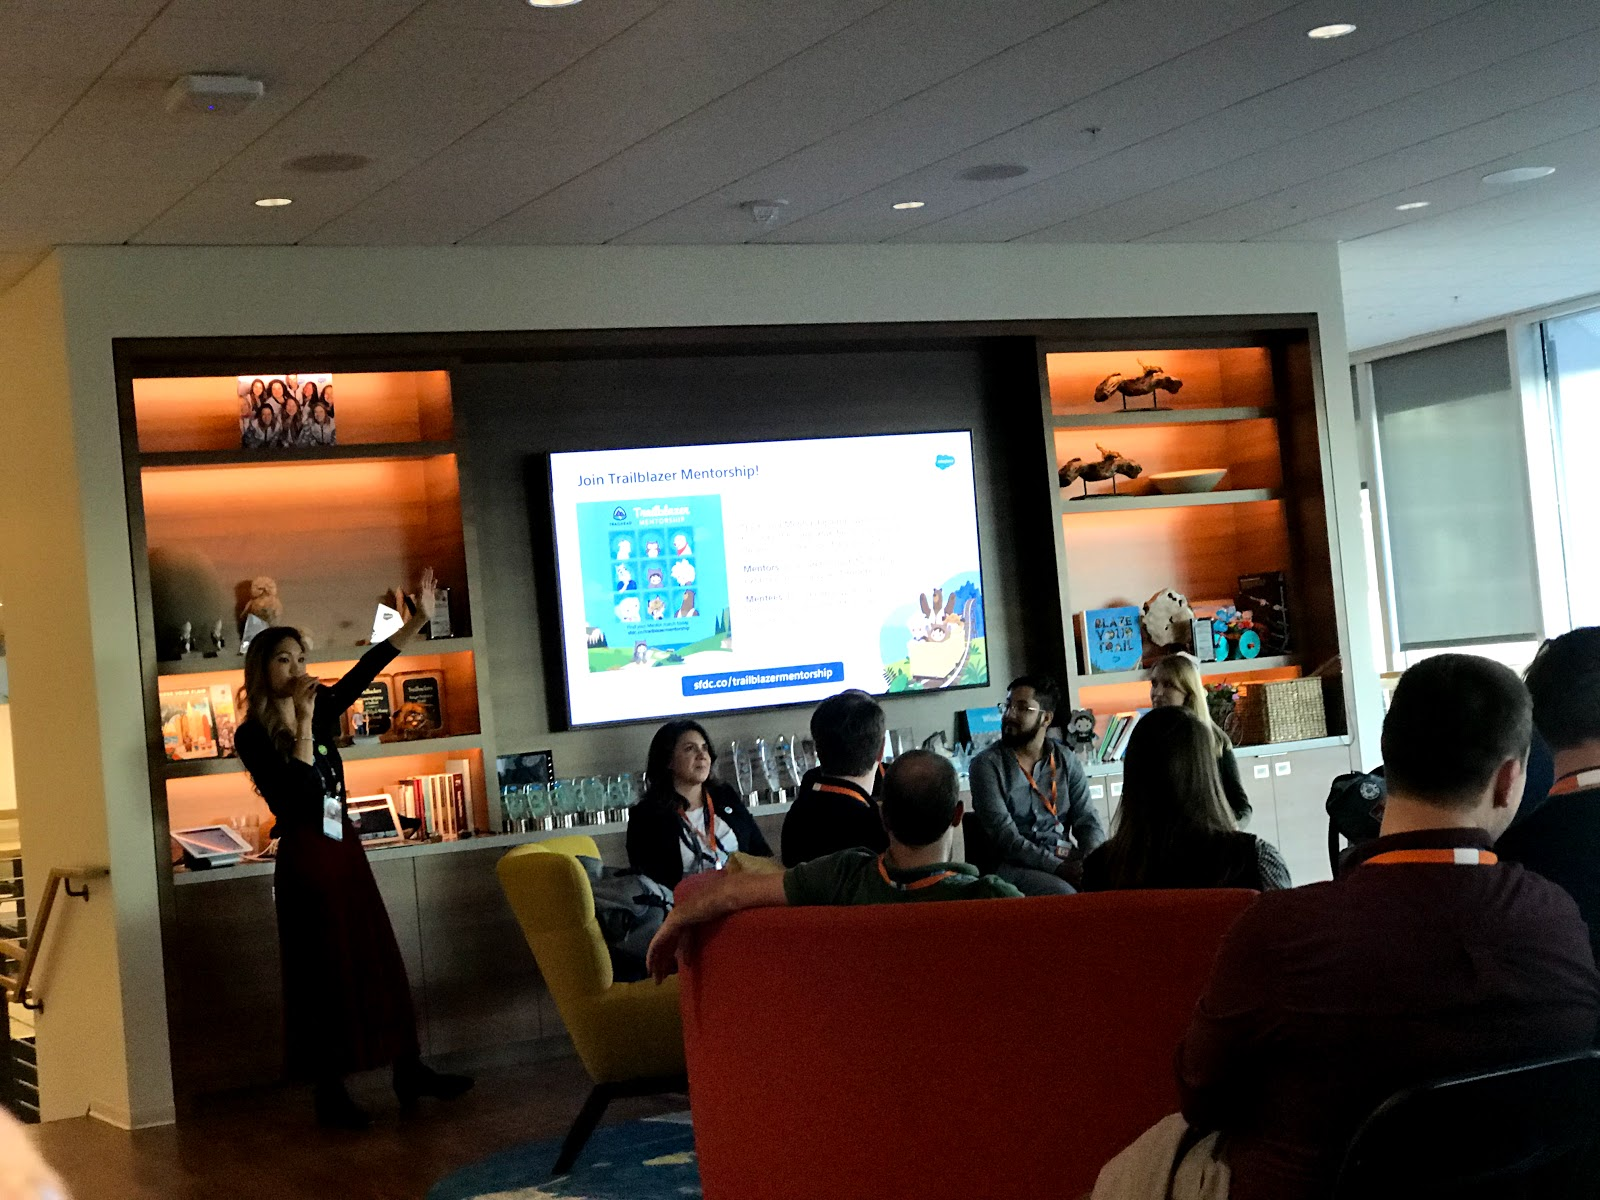 Tigh Loughhead at the Dreamforce Career Readiness event in San Francisco